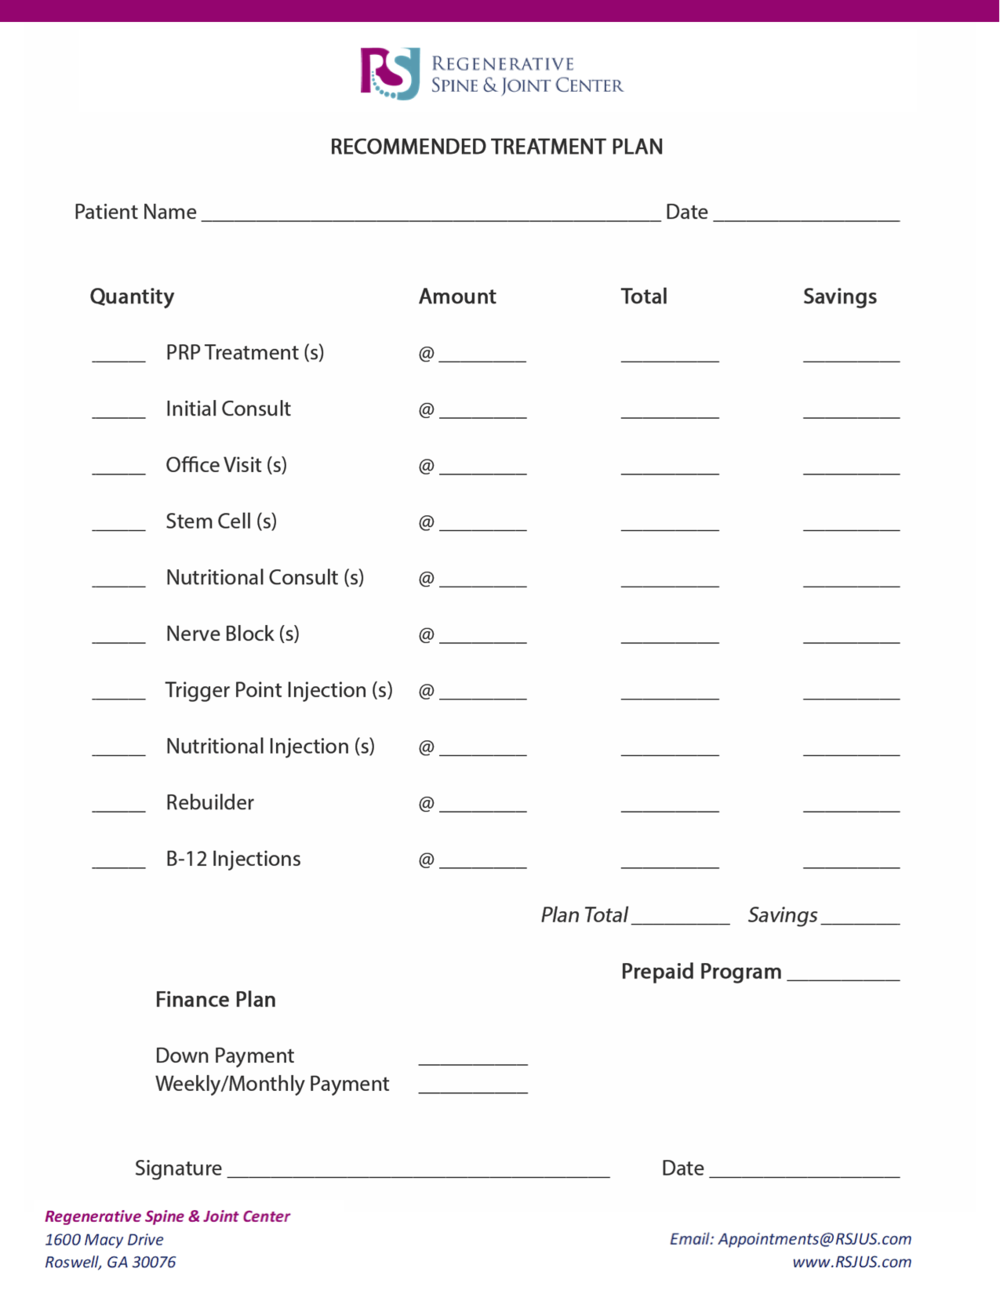 PRP Recommended Treatment Plan Form -